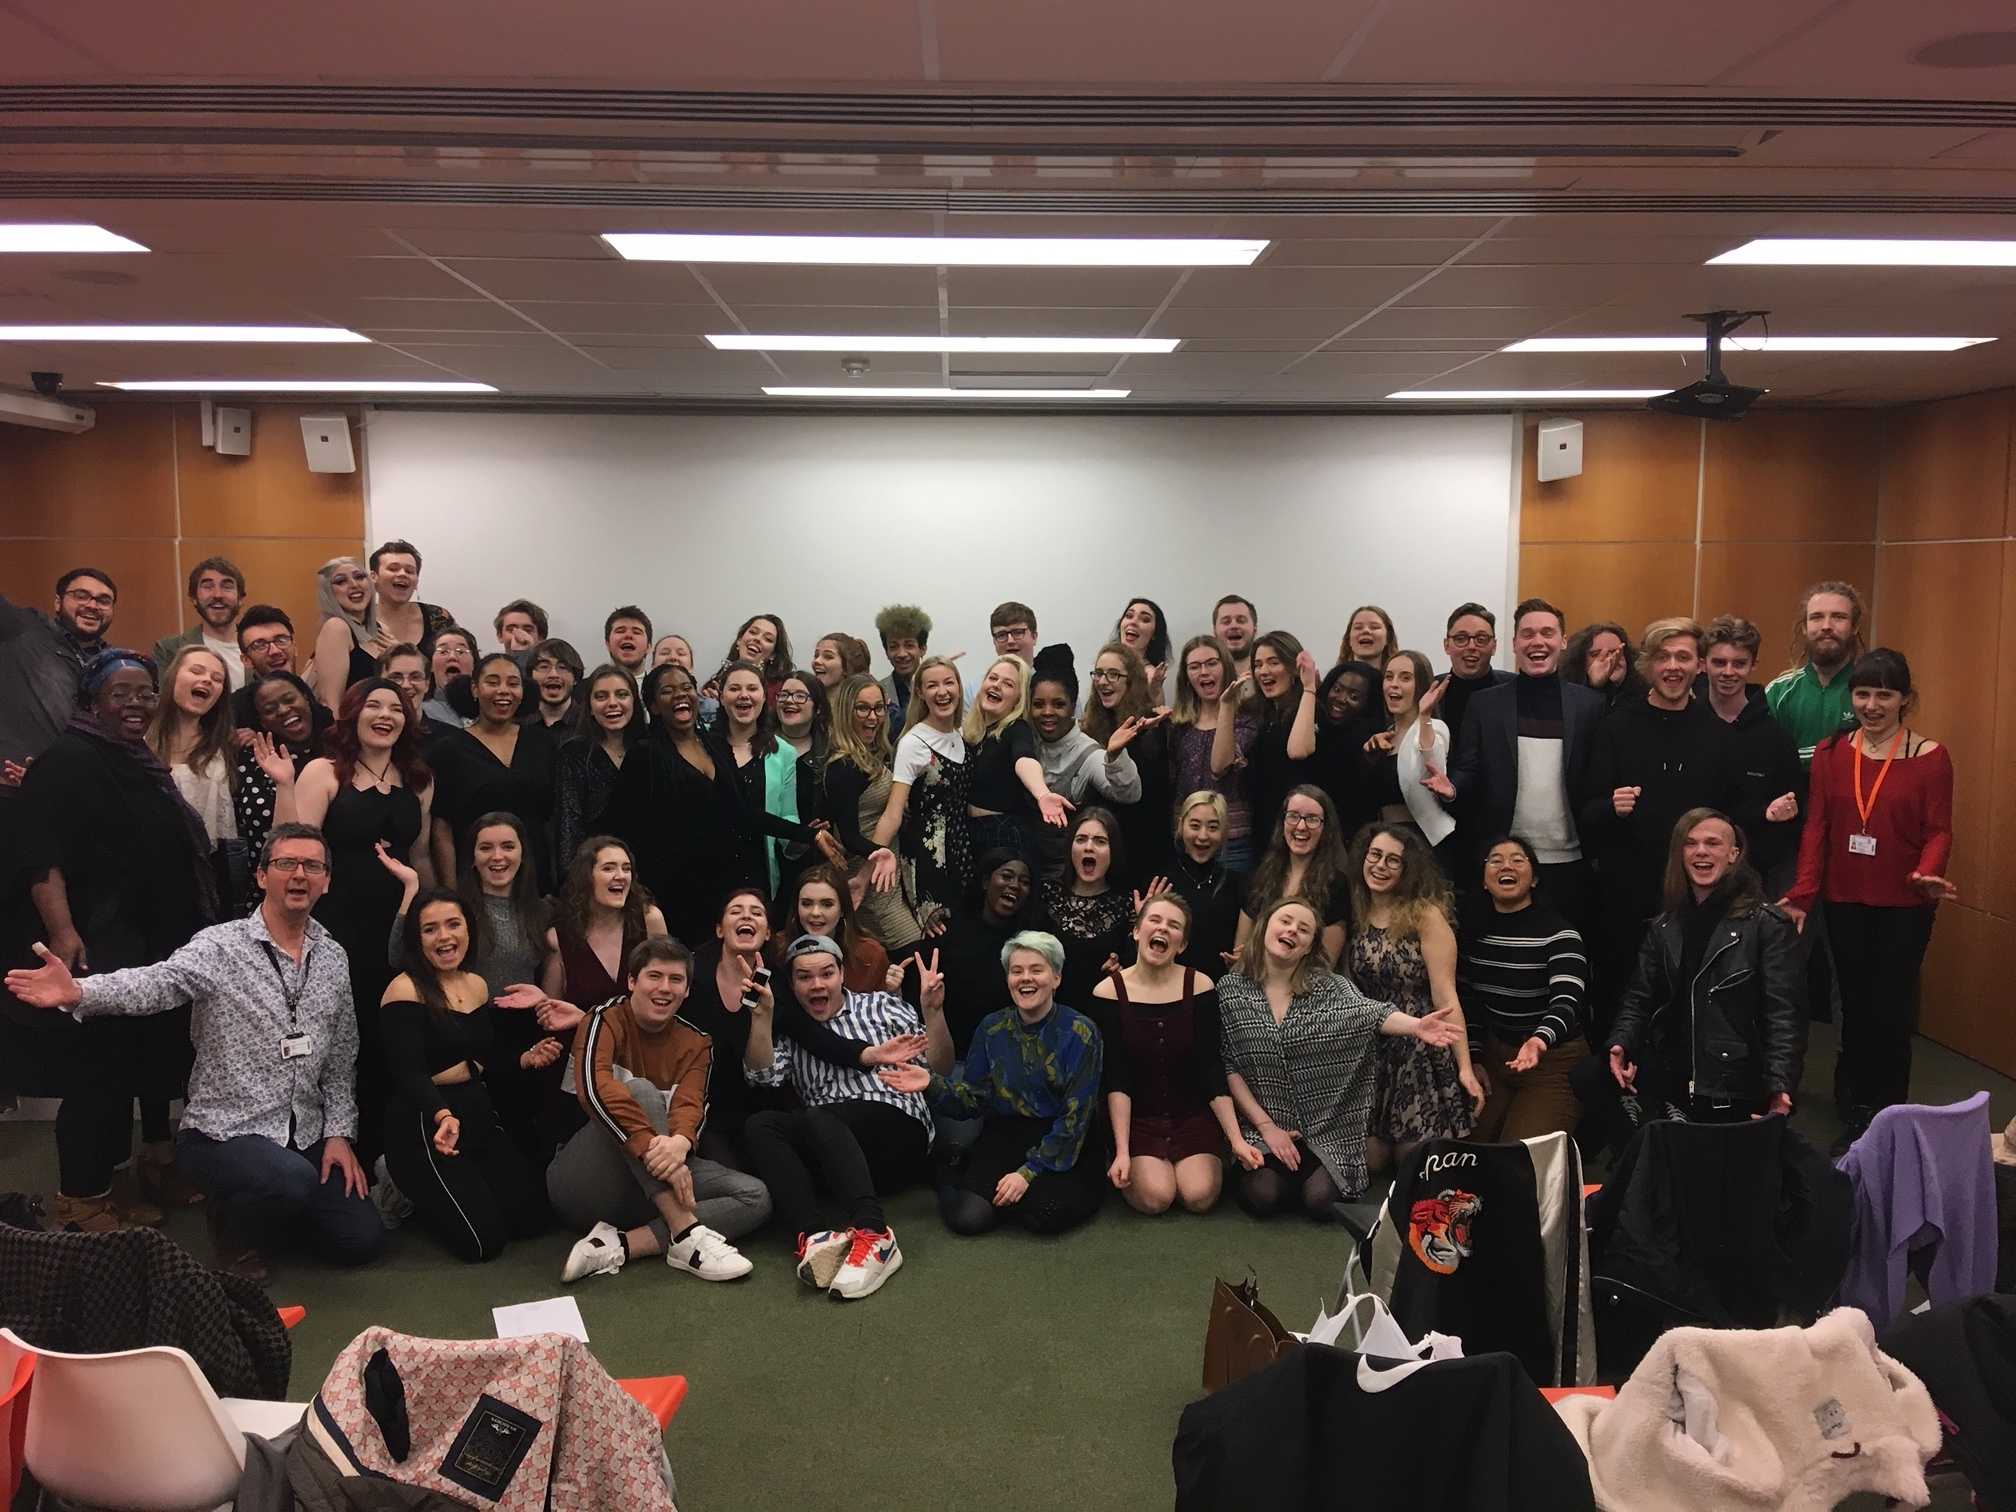 A happy group of Acting and Music Students after a successful screening!